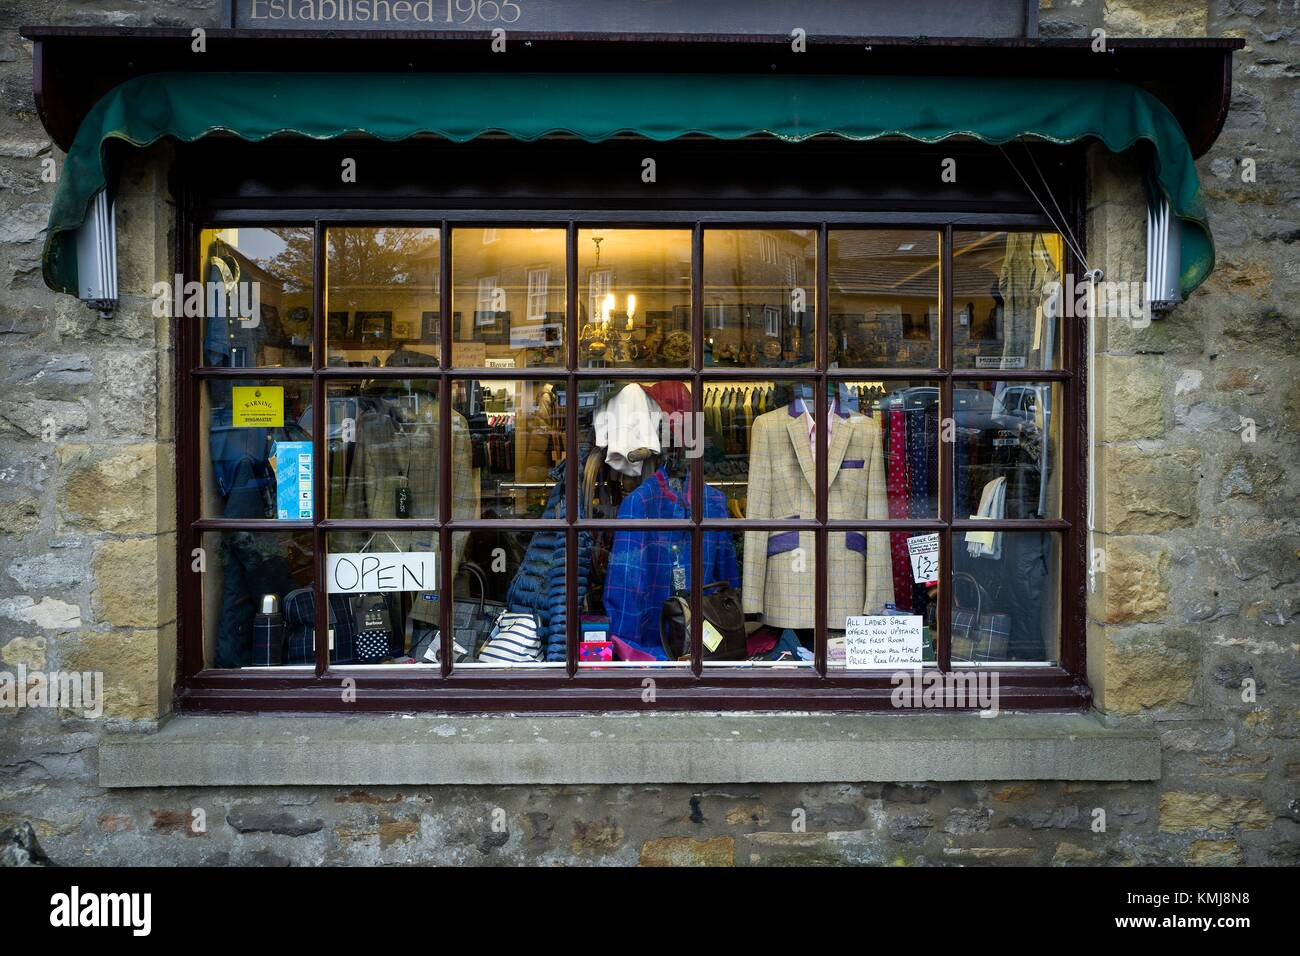 Shop window of a traditional English clothing store with the 'OPEN' sign. Grassington, Yorkshire Dales, - Stock Image